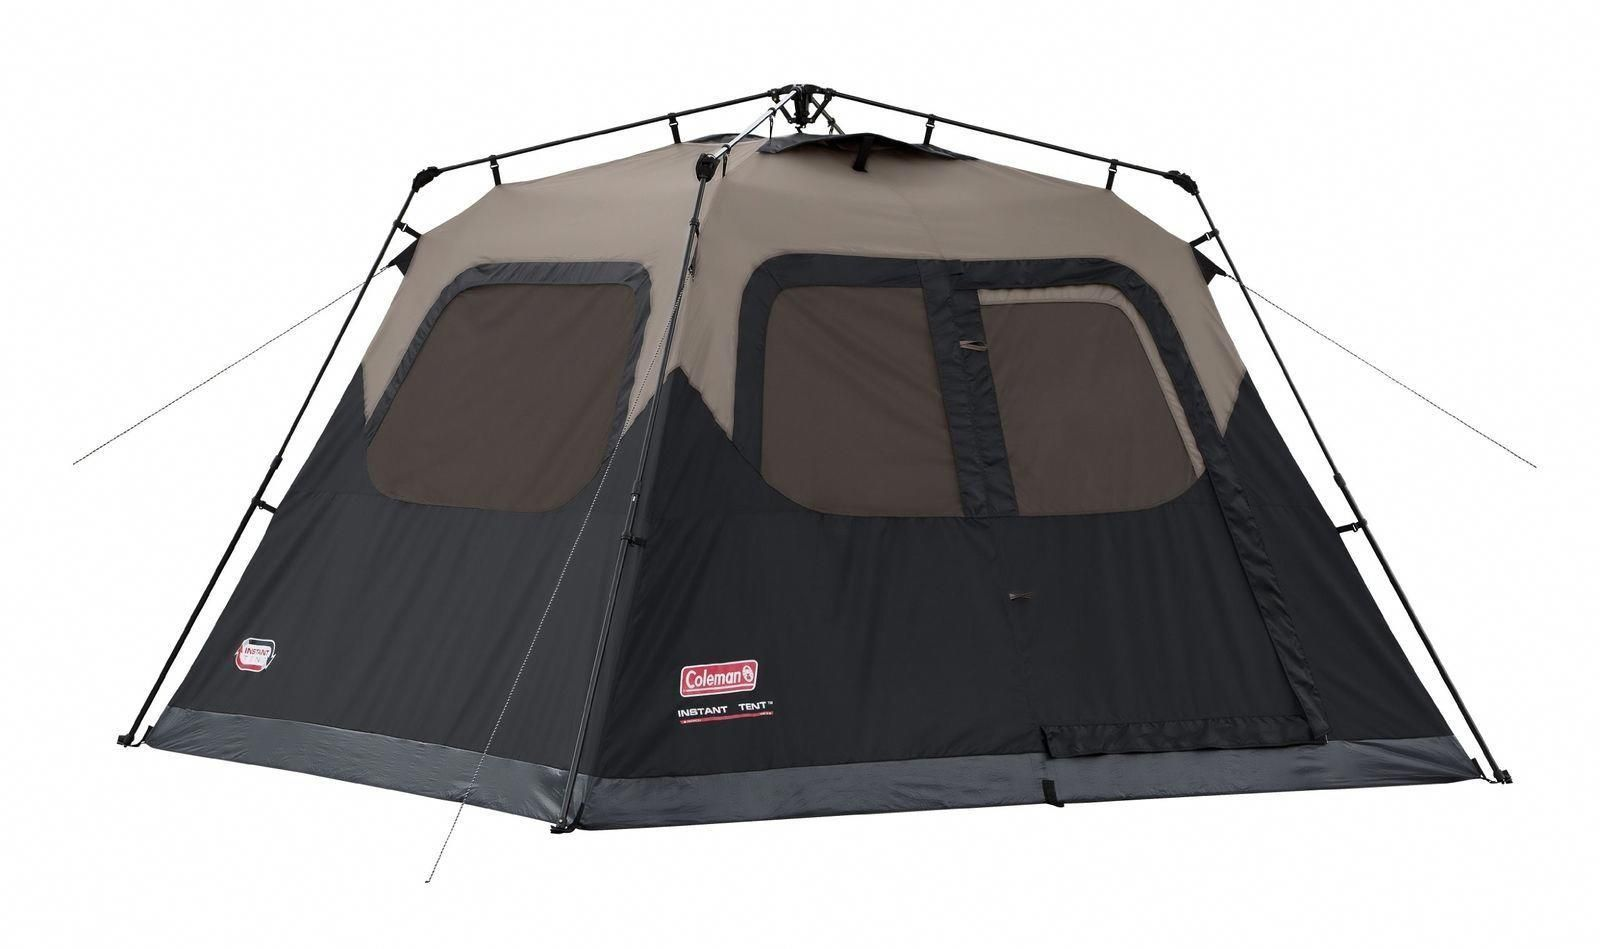 6 Person Coleman Instant Cabin Tent Very Durable And